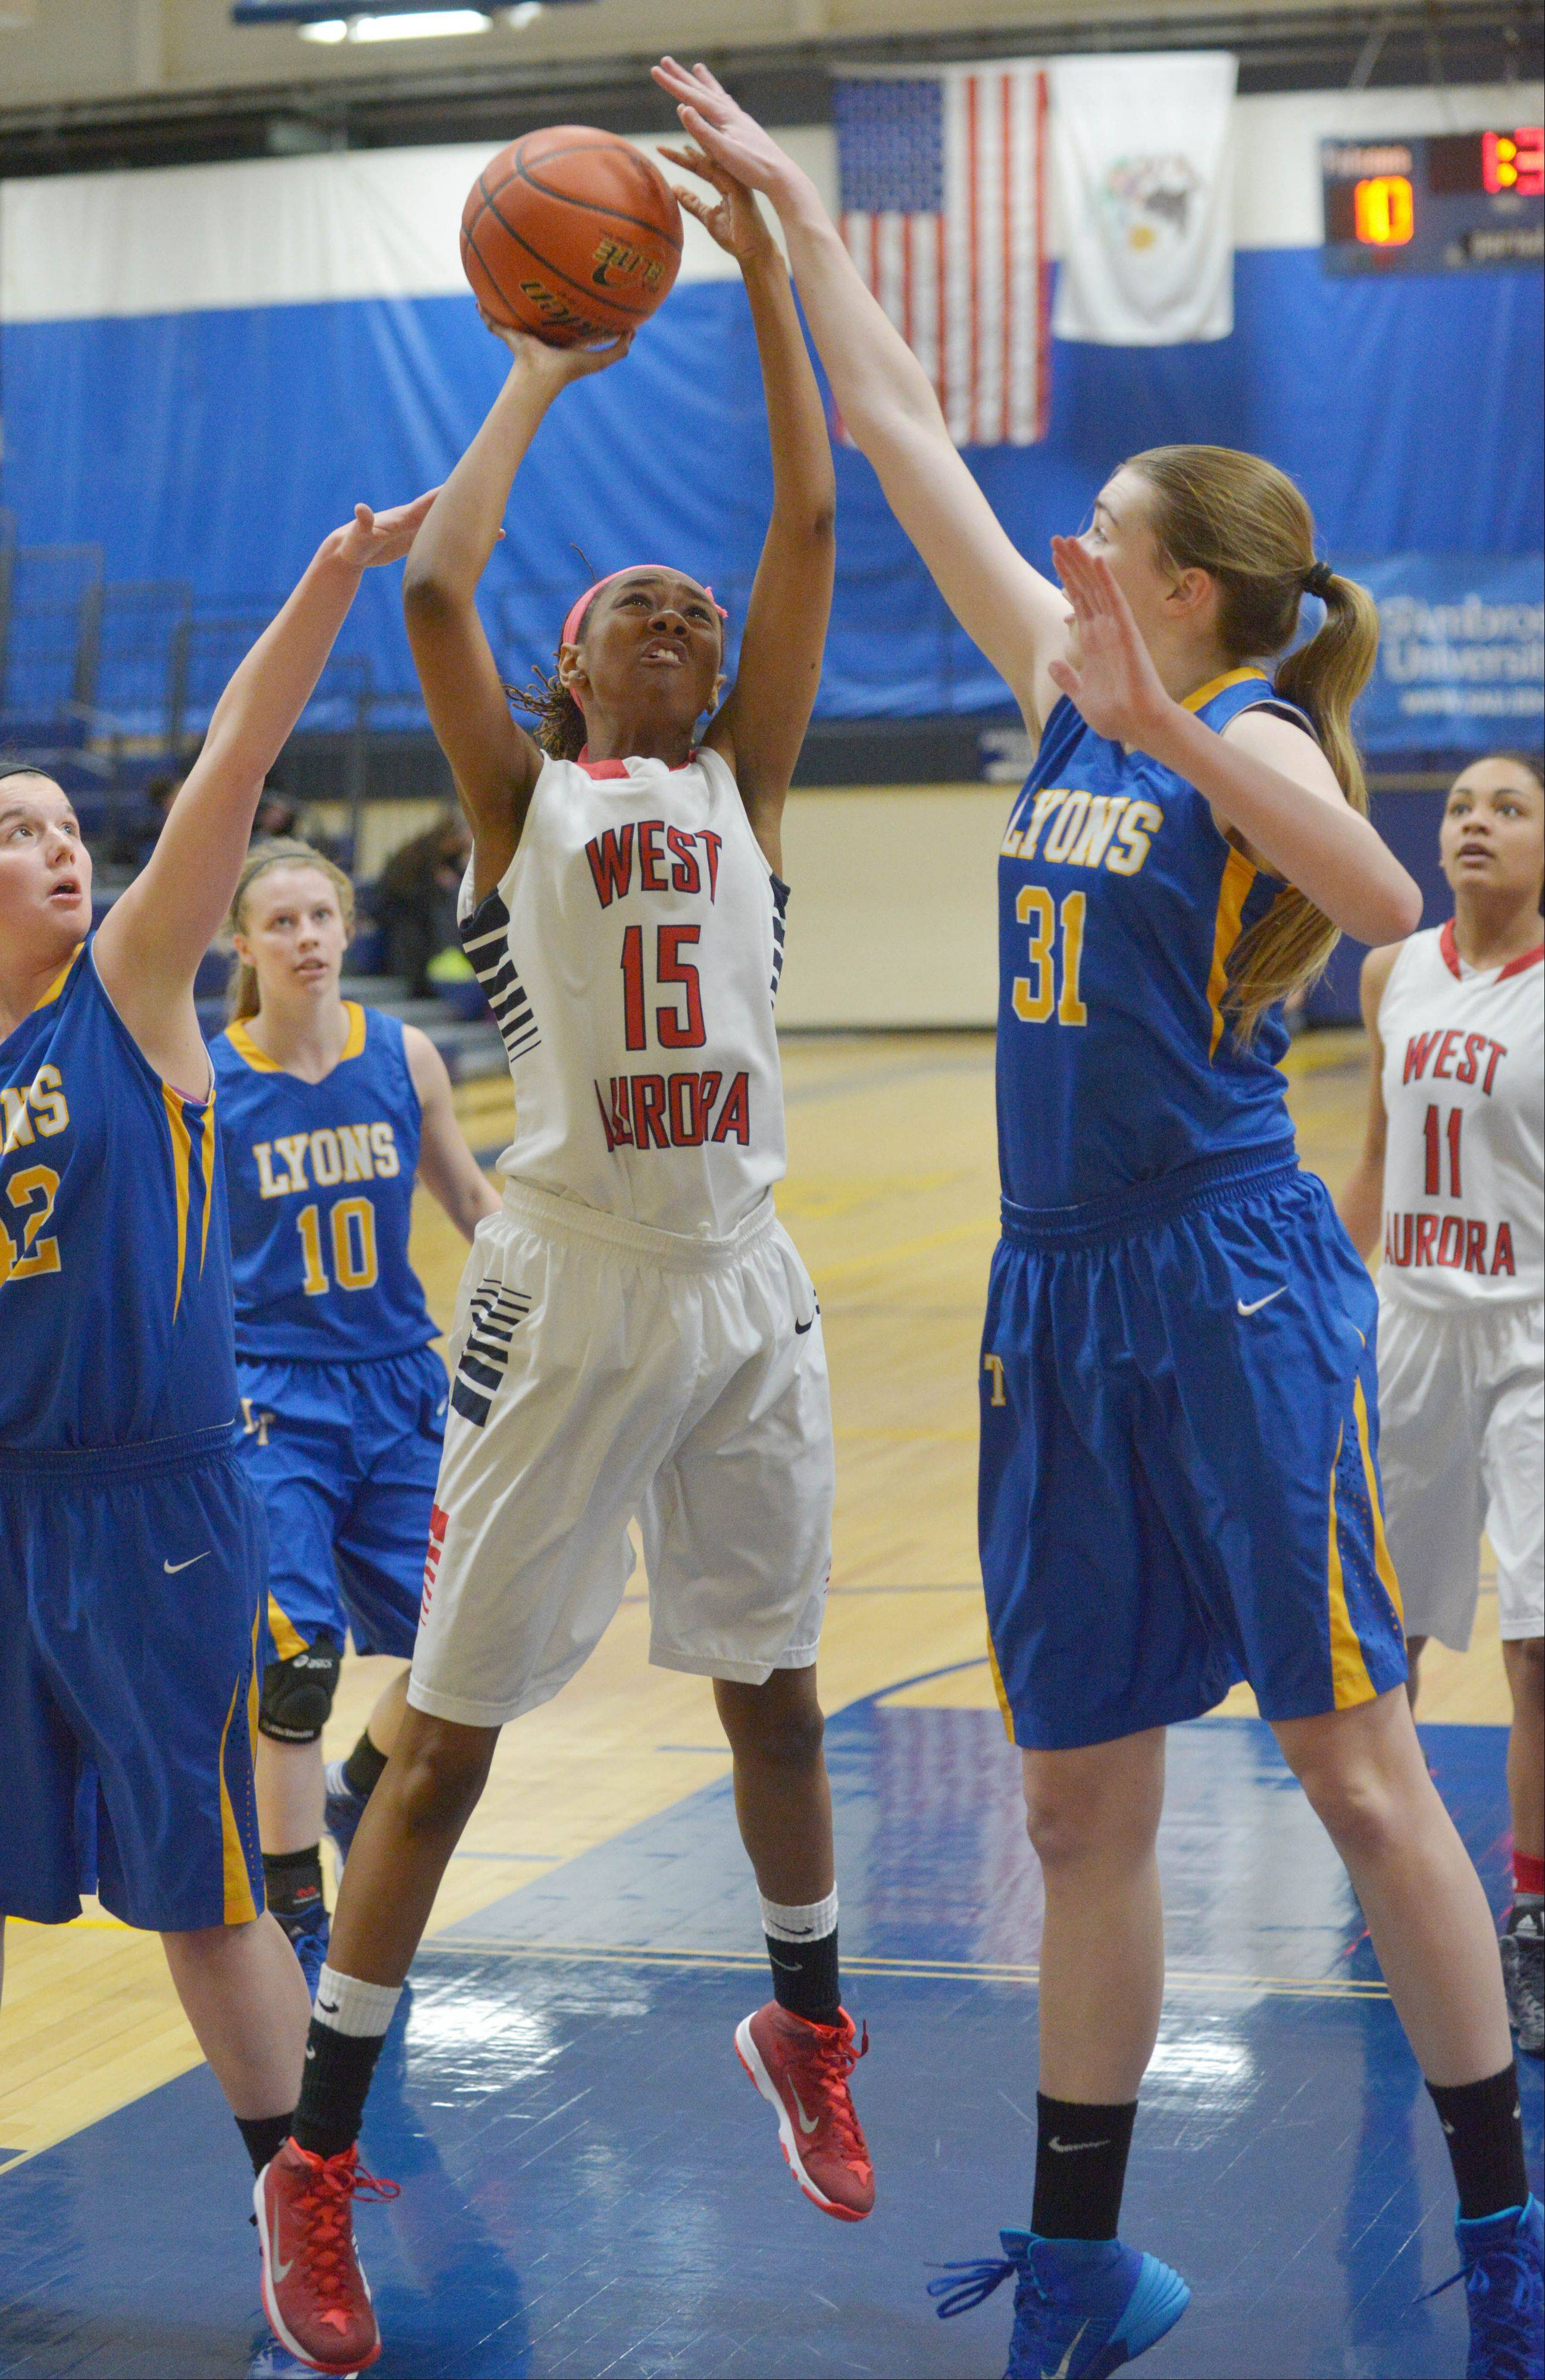 Natalee DeJohnette, of West Aurora, puts up a shot while Emily Pender, of Lyons, attempts to block during the West Aurora at Wheaton North girls basketball tournament game Thursday.